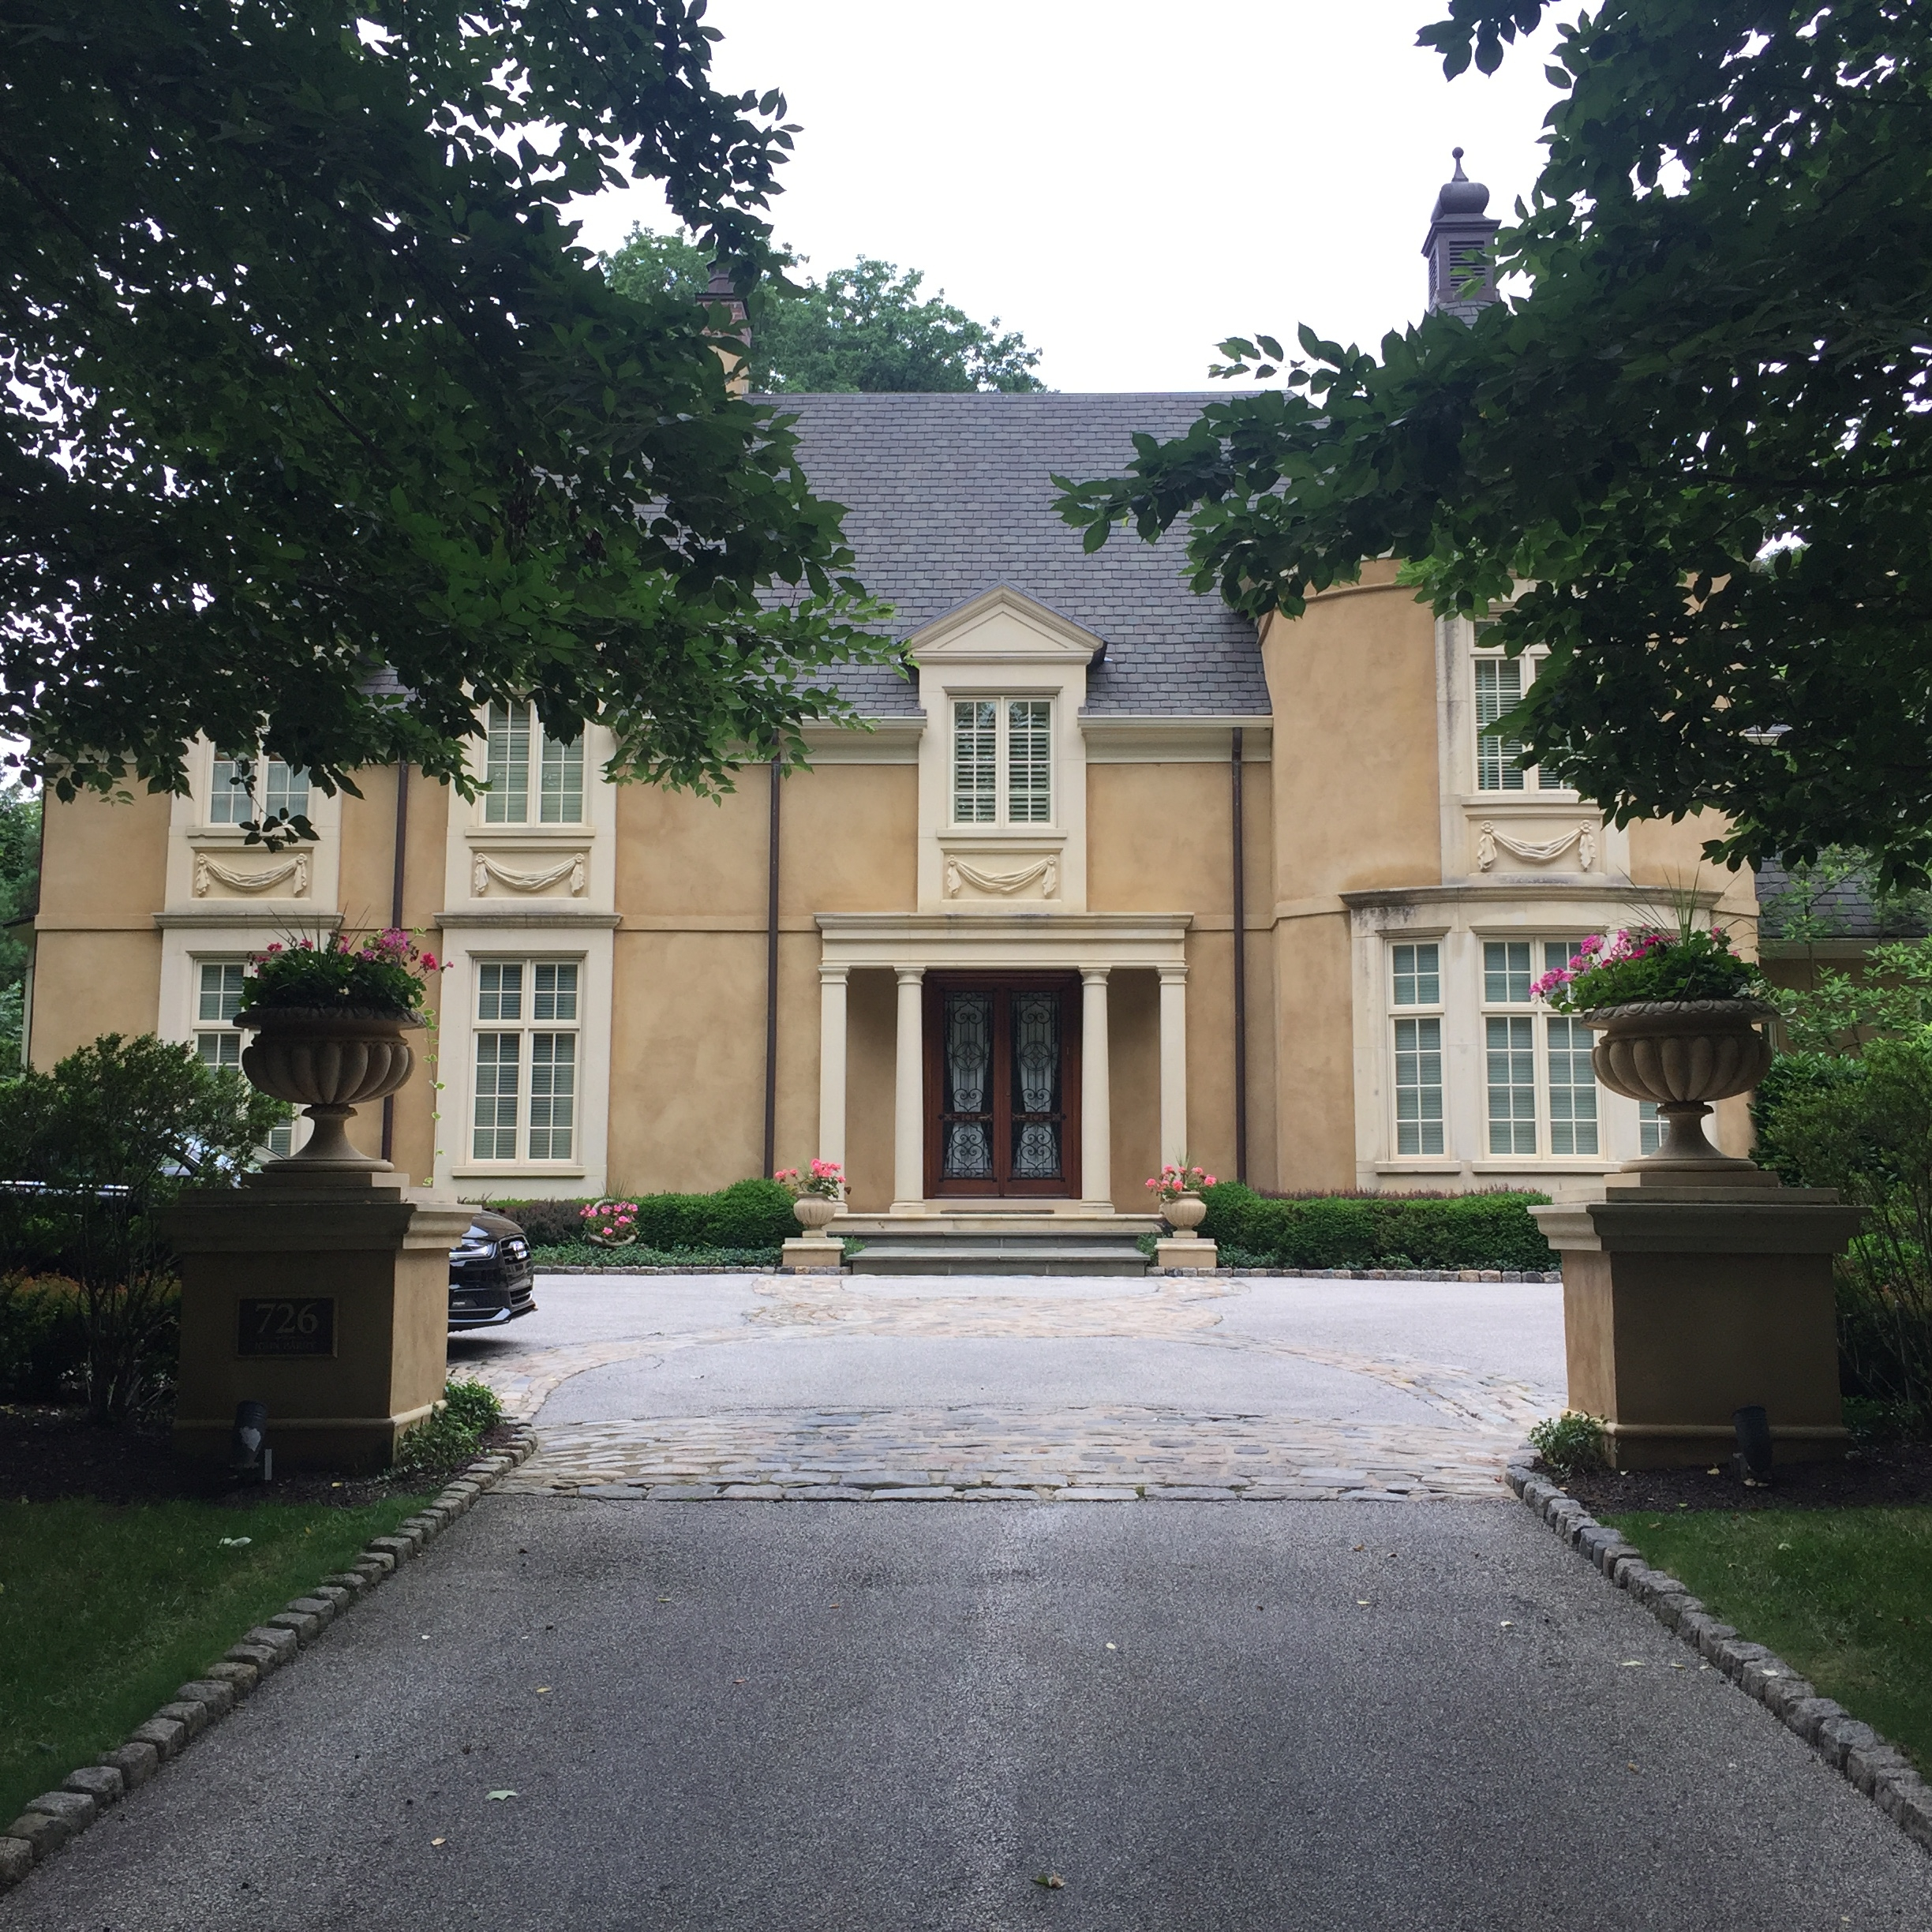 The gutters obscured by the canopy trees here were so high that the owners of this Bryn Mawr Estate couldn't find anybody to clean them. It took us some time, since the downspouts were all packed to the brim, but we got the dirty job done (and continue to do so, four times a year).